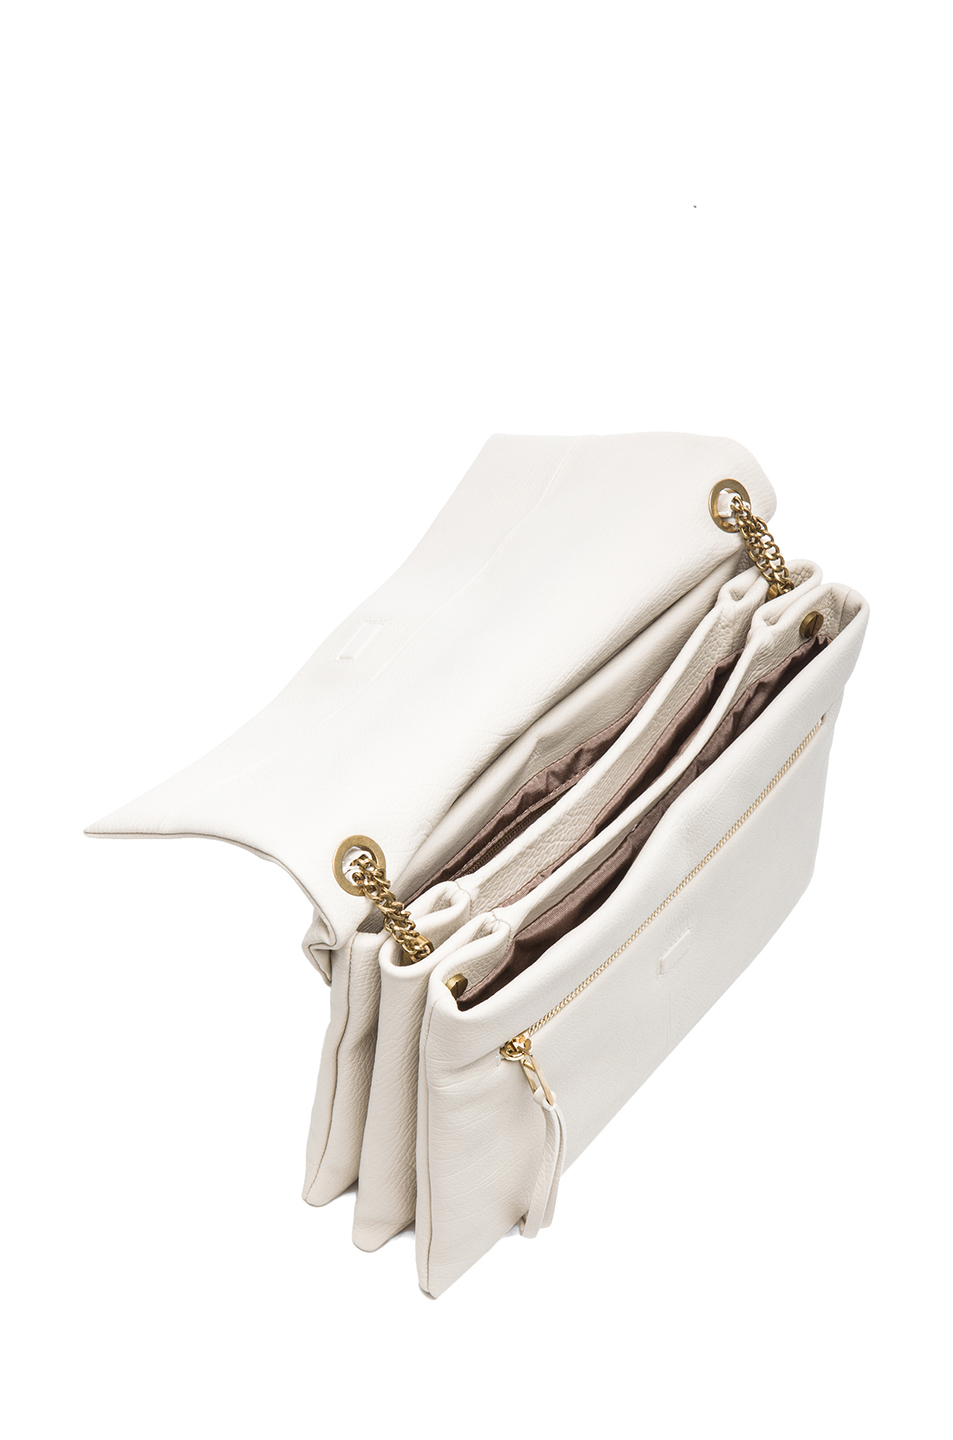 Lanvin | Medium Sugar Bag in White